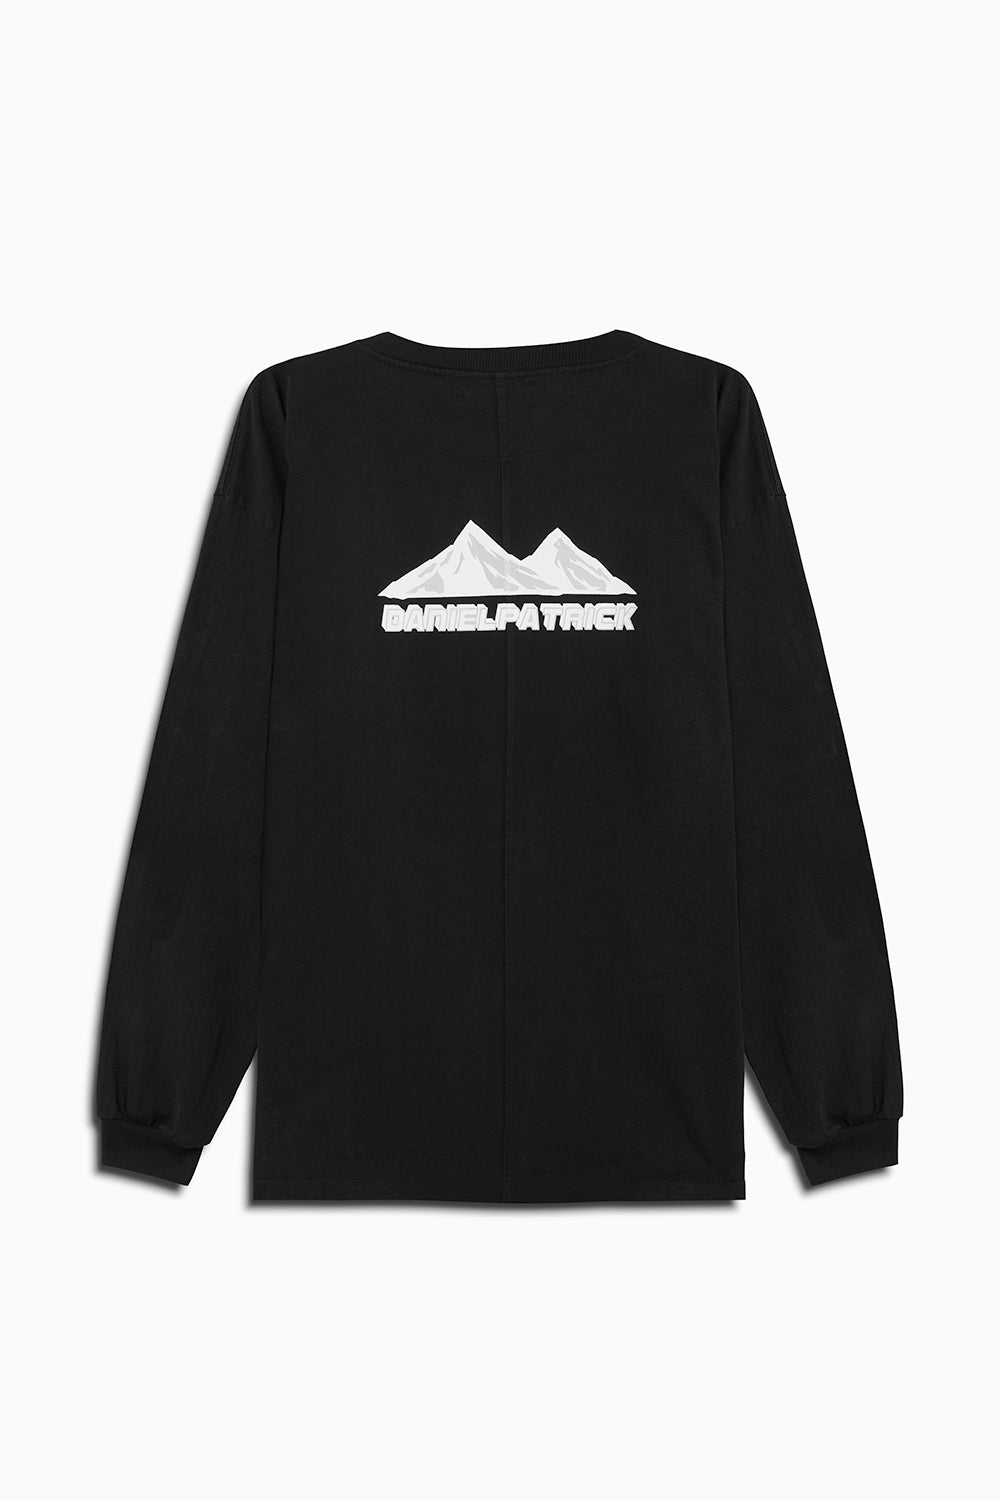 moving mountains l/s tee in black by daniel patrick